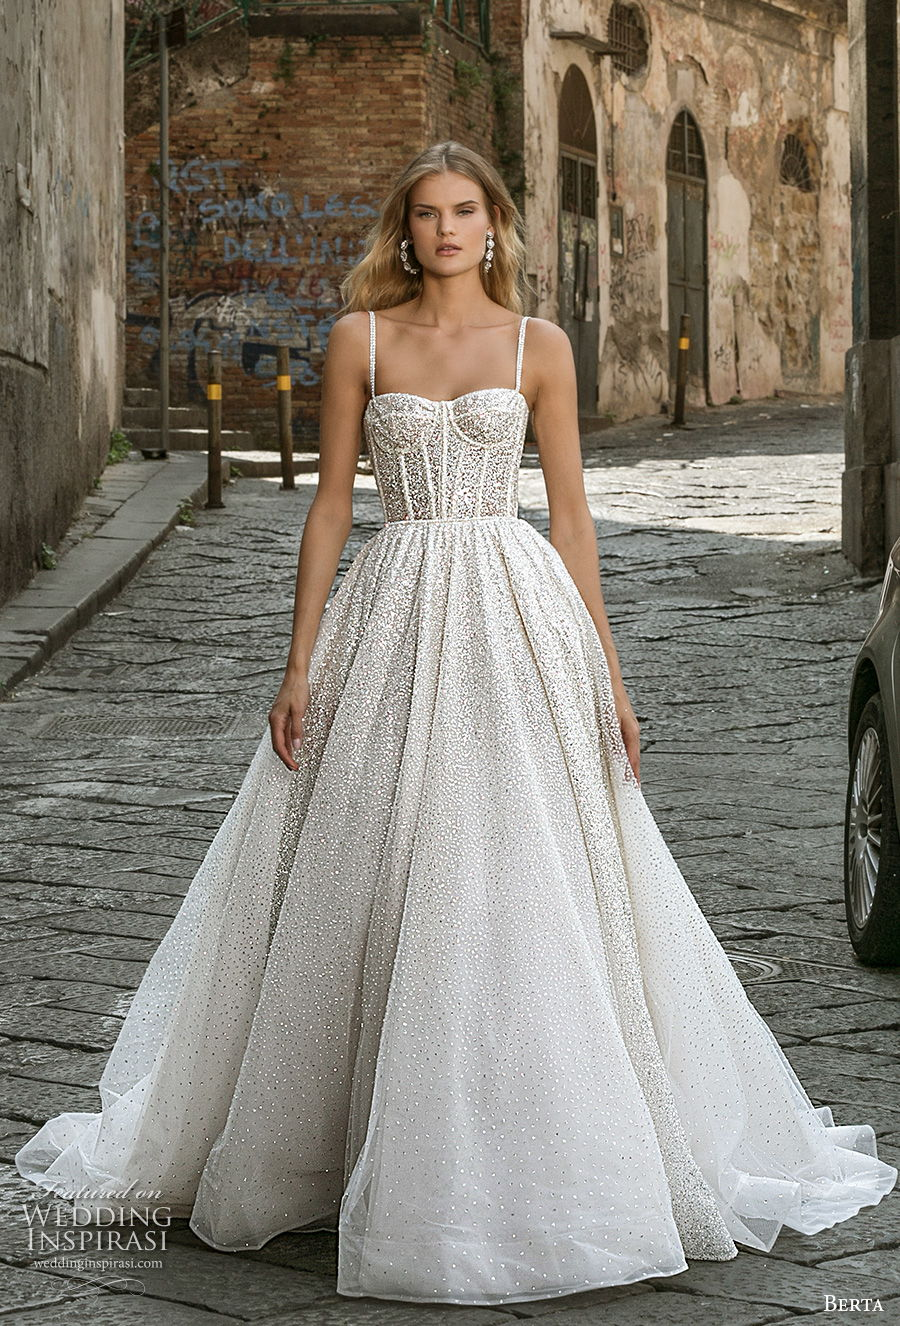 berta fall 2020 bridal sleeveless spaghetti strap sweetheart neckline bustier full embellishment romantic ball gown a line wedding dress mid back medium train (5) mv